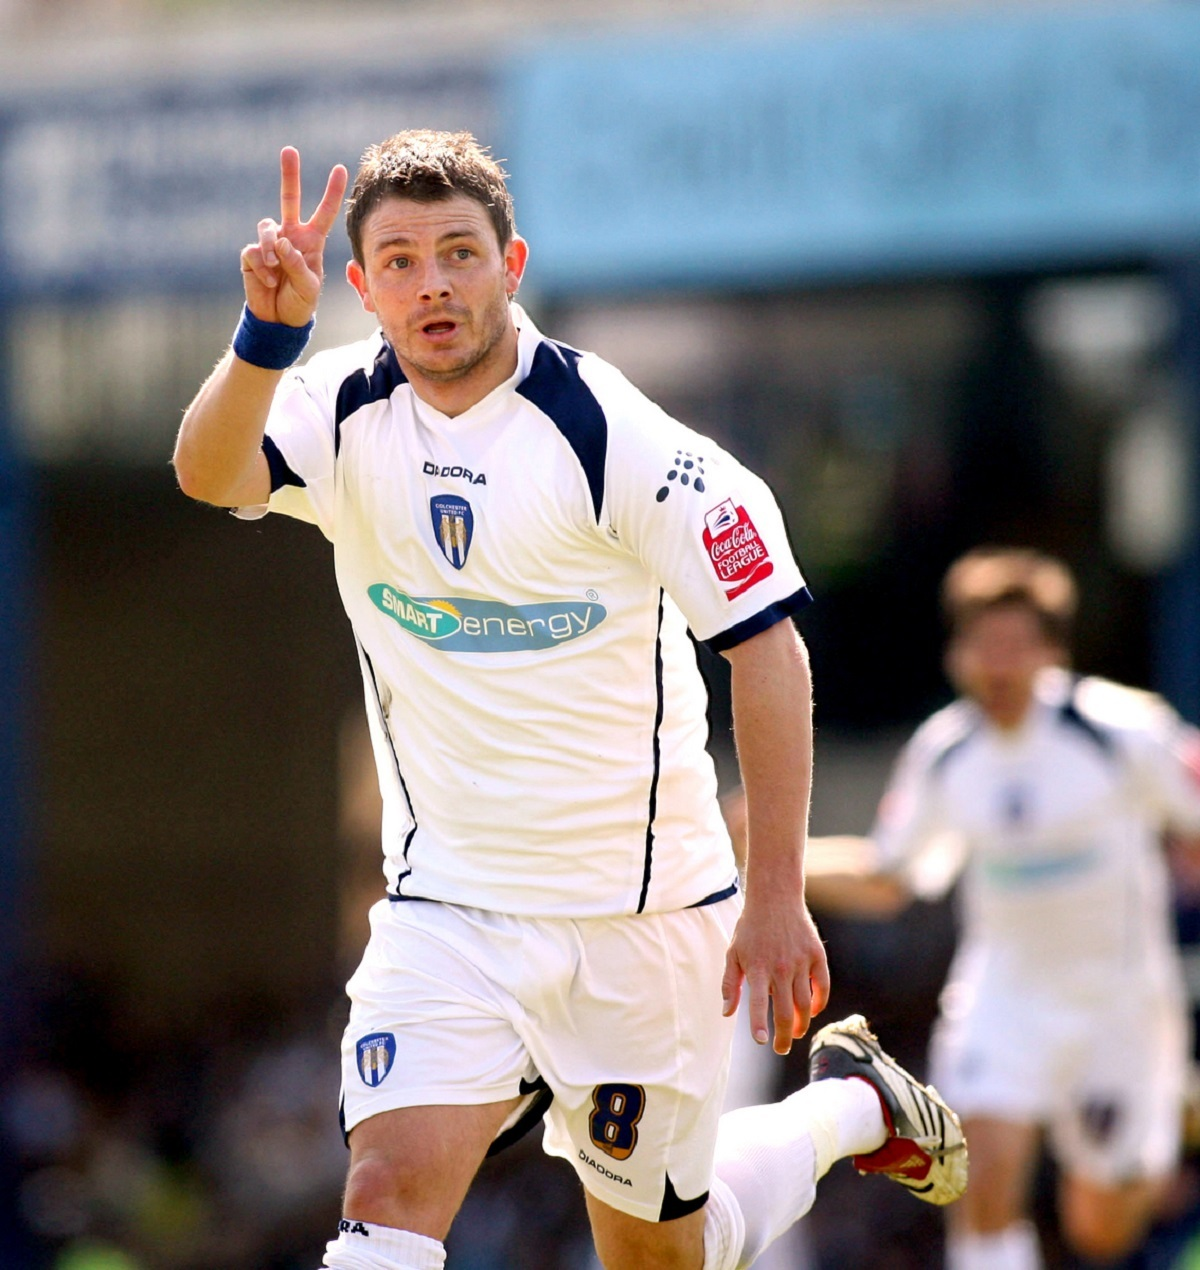 54978-7 u's v southend rs..Colchester United's victory at Roots Hall...Jamie Cureton..wk 14 eg ecs.